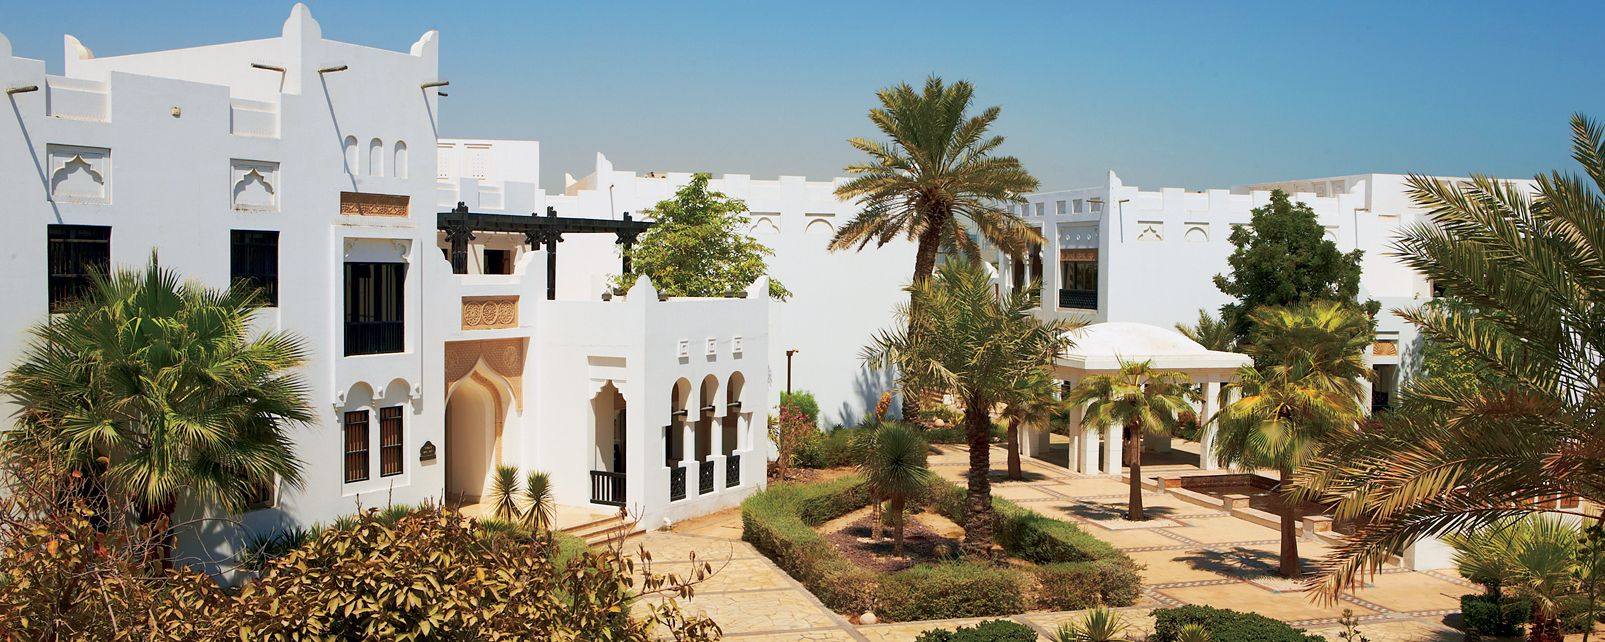 Hôtel Sharq Village and Spa by Ritz Carlton